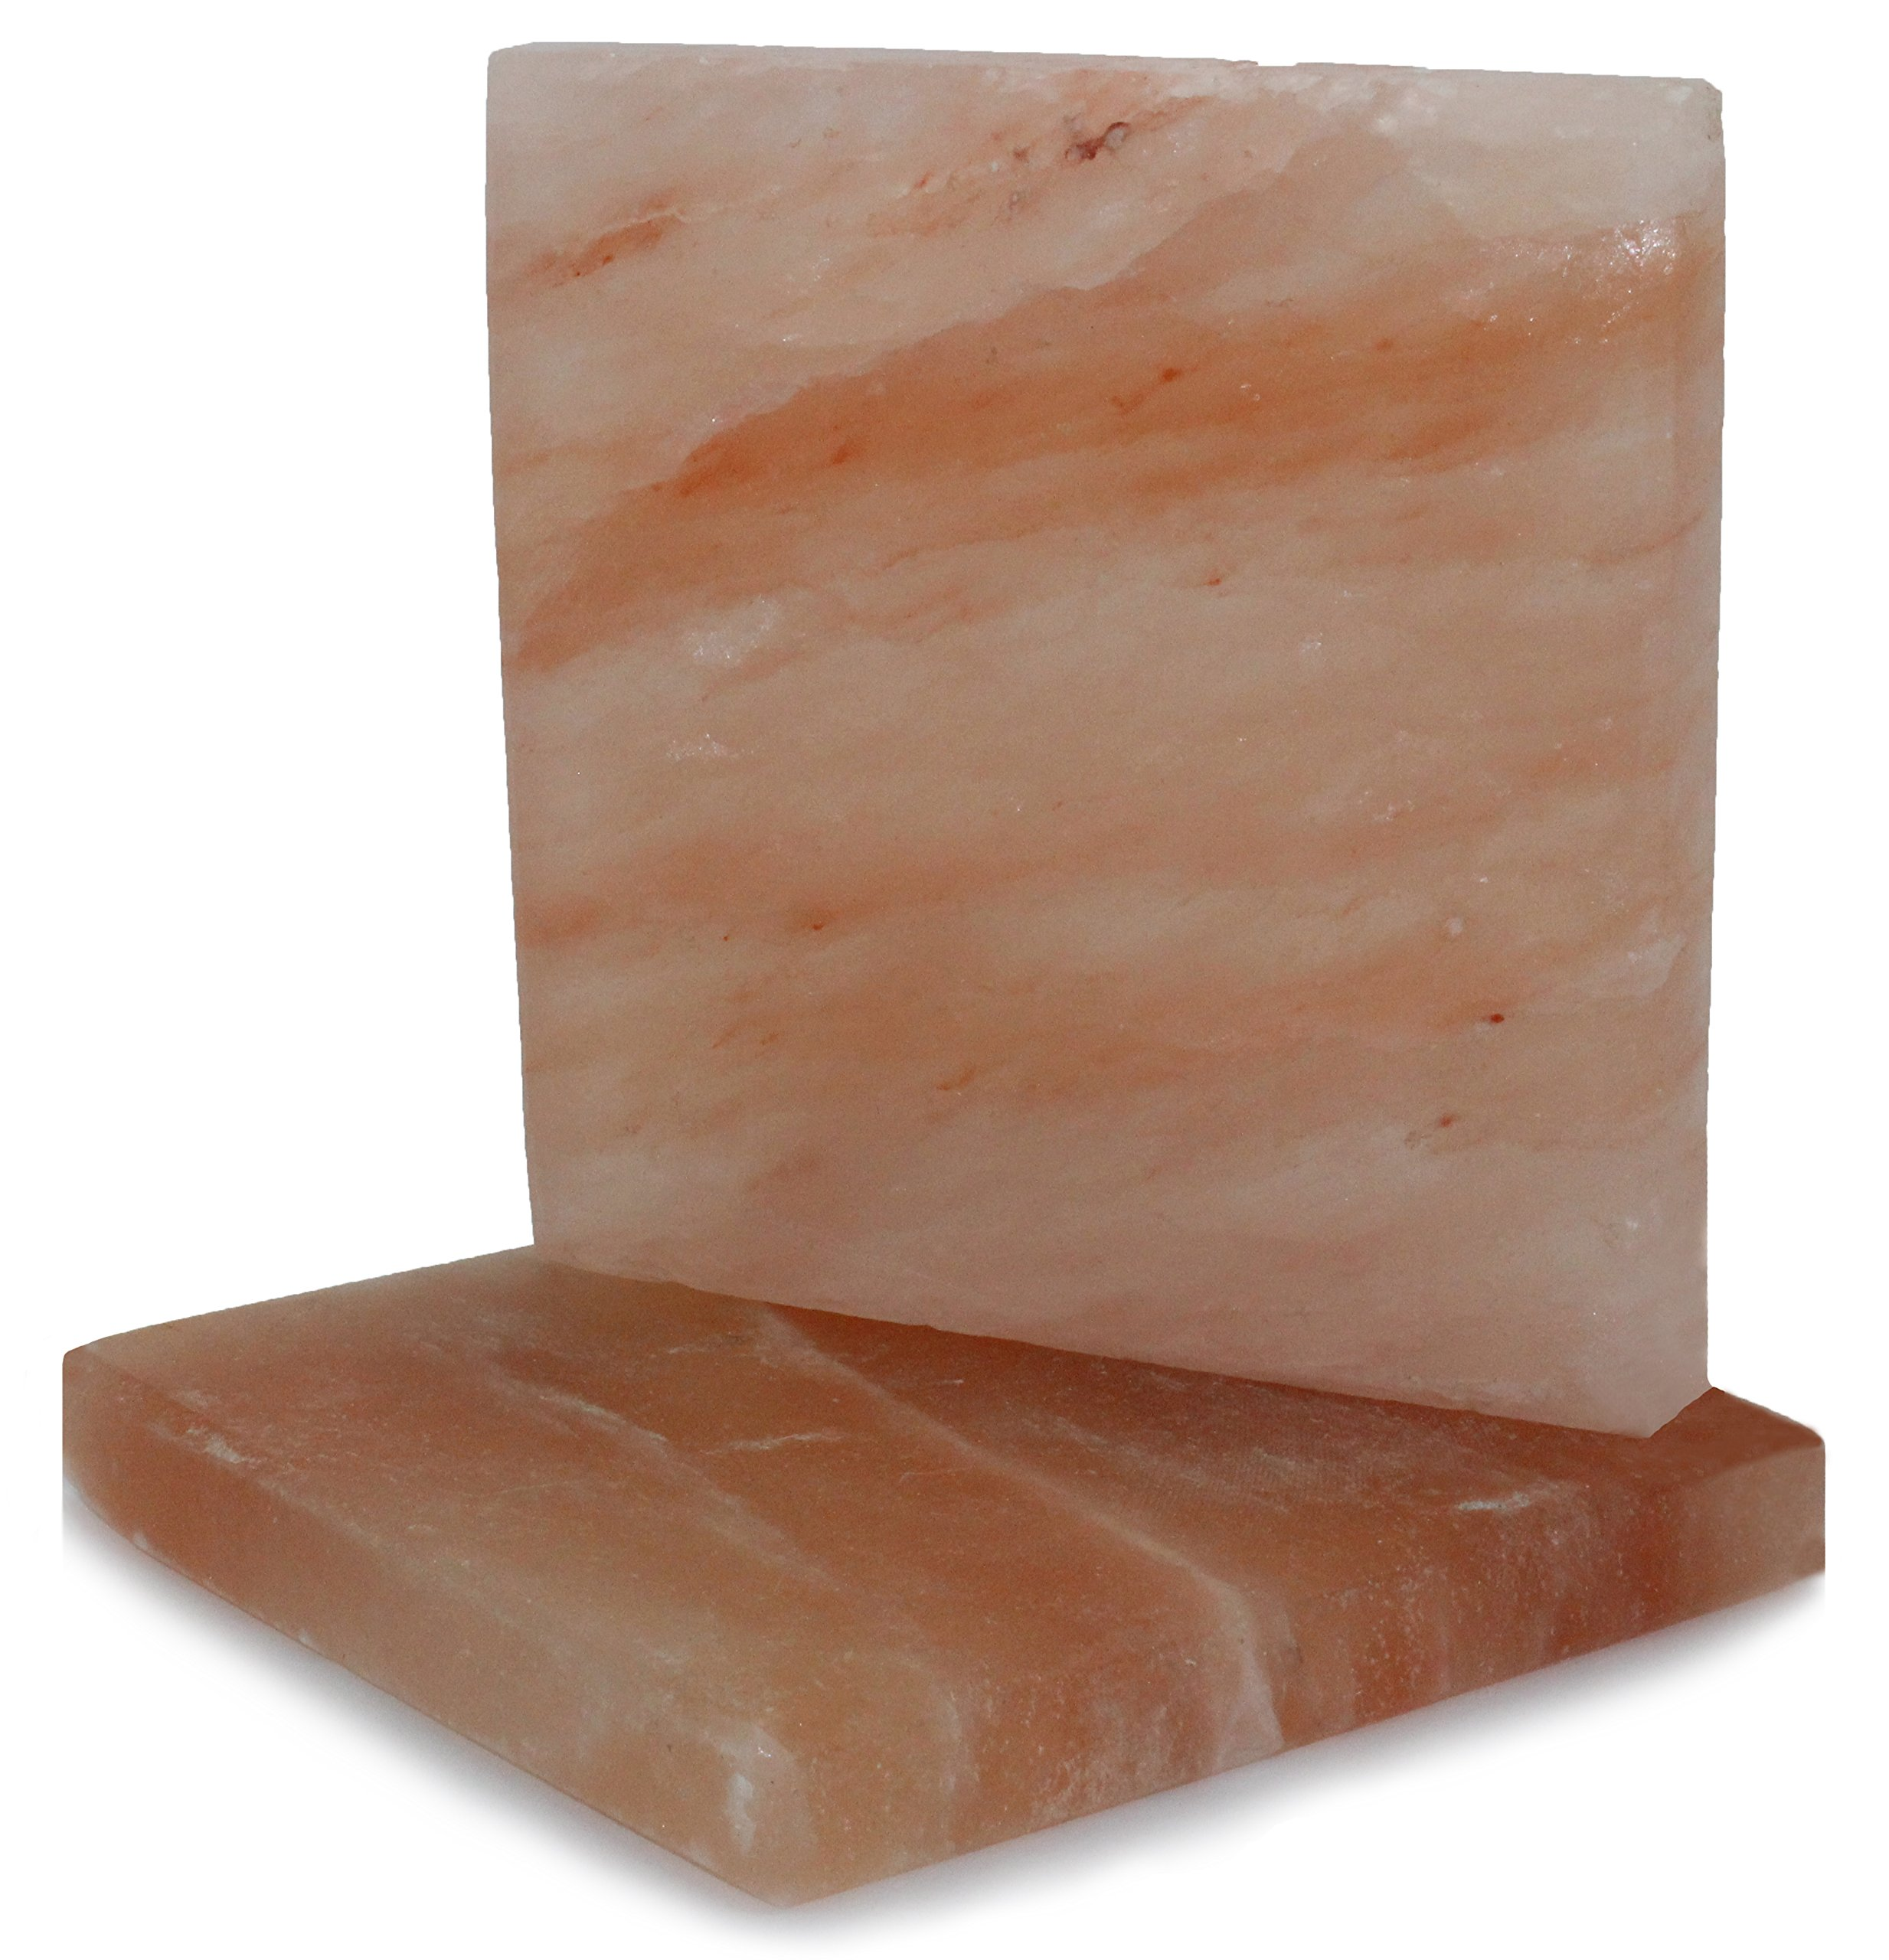 IndusClassic SSP-07 Himalayan Salt Block, Plate, Slab for Cooking, Grilling, Seasoning, And Serving (8X8X1 Set of 2) by Indus Classic